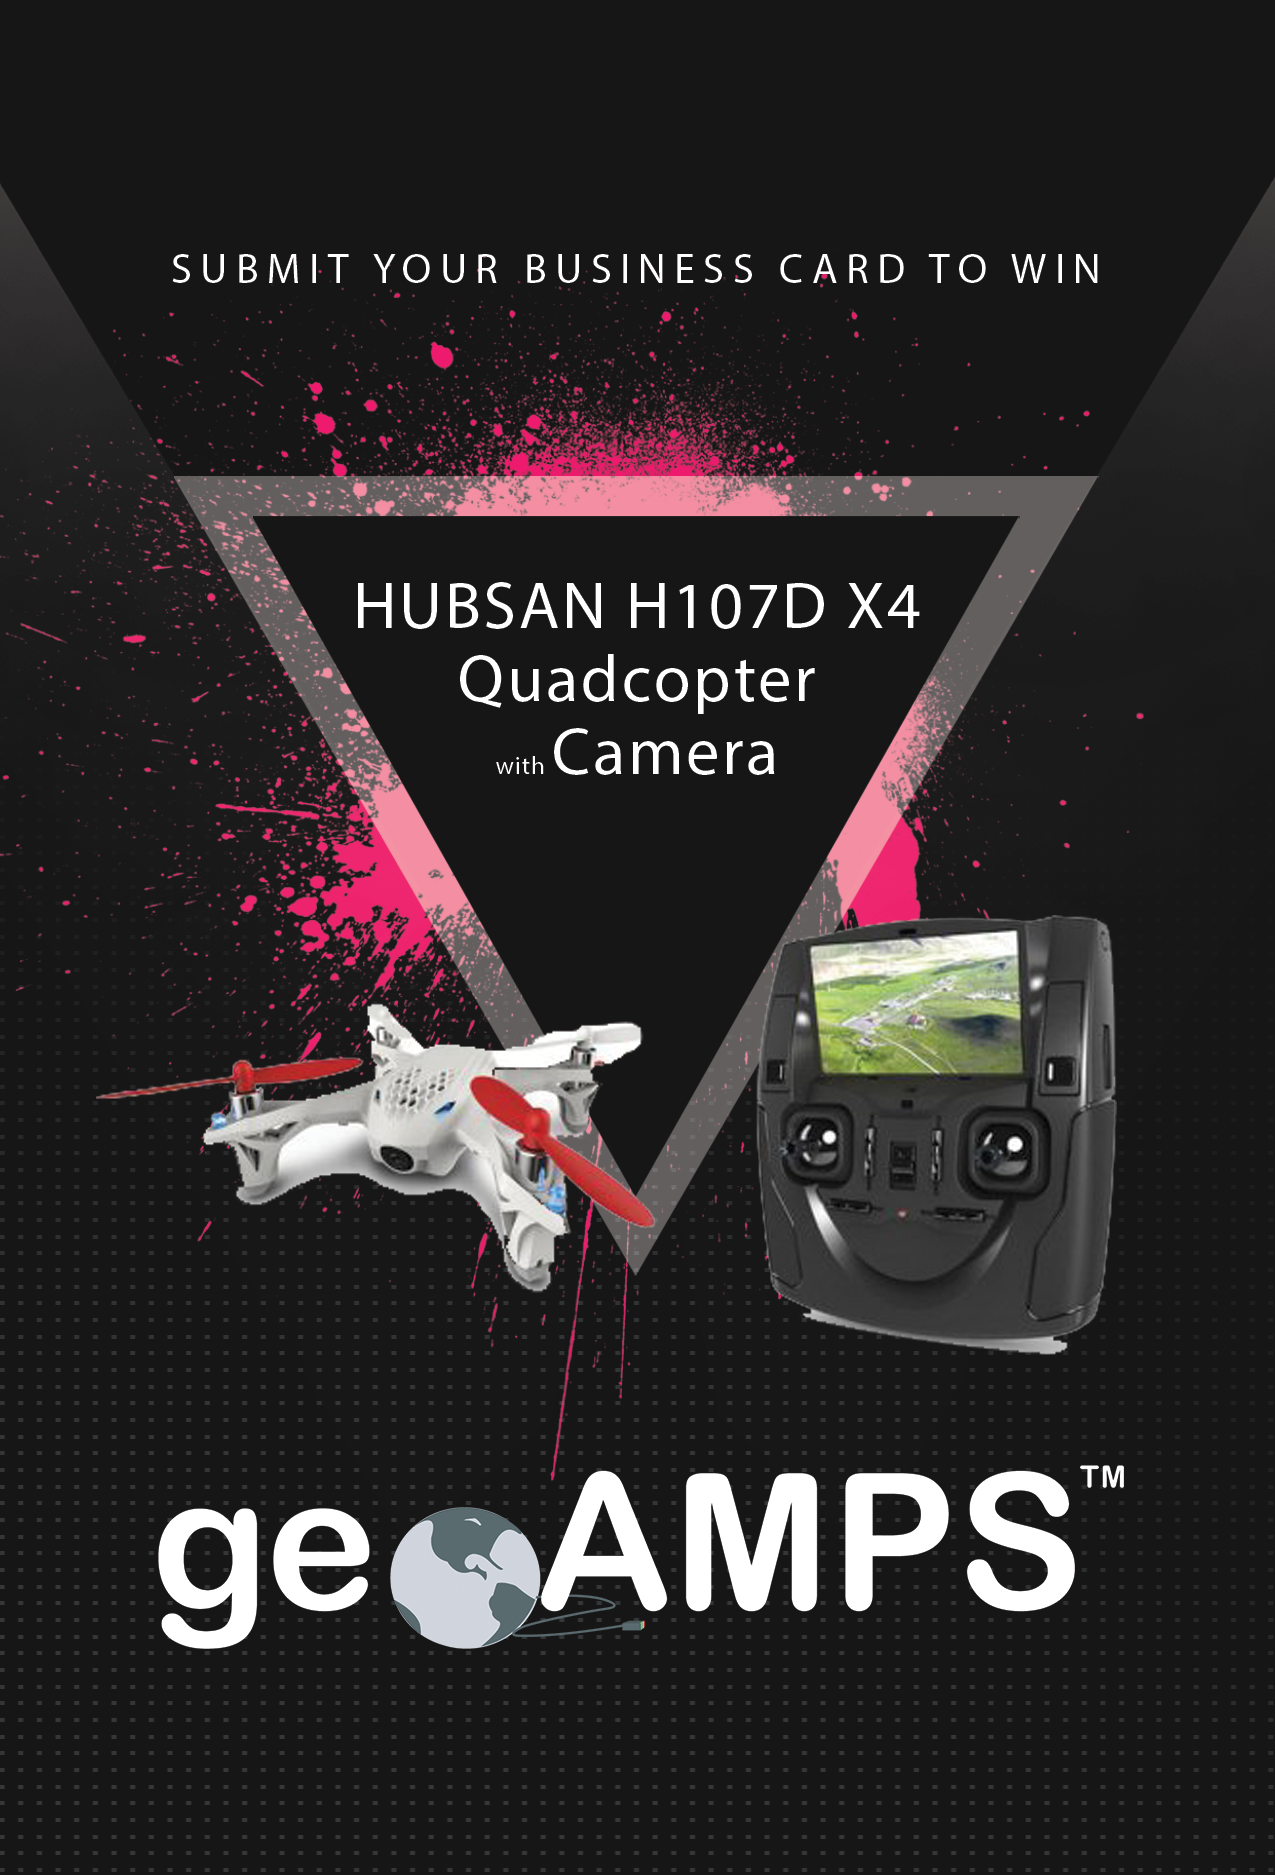 geoamps-irwa-drone-flyer-01.png